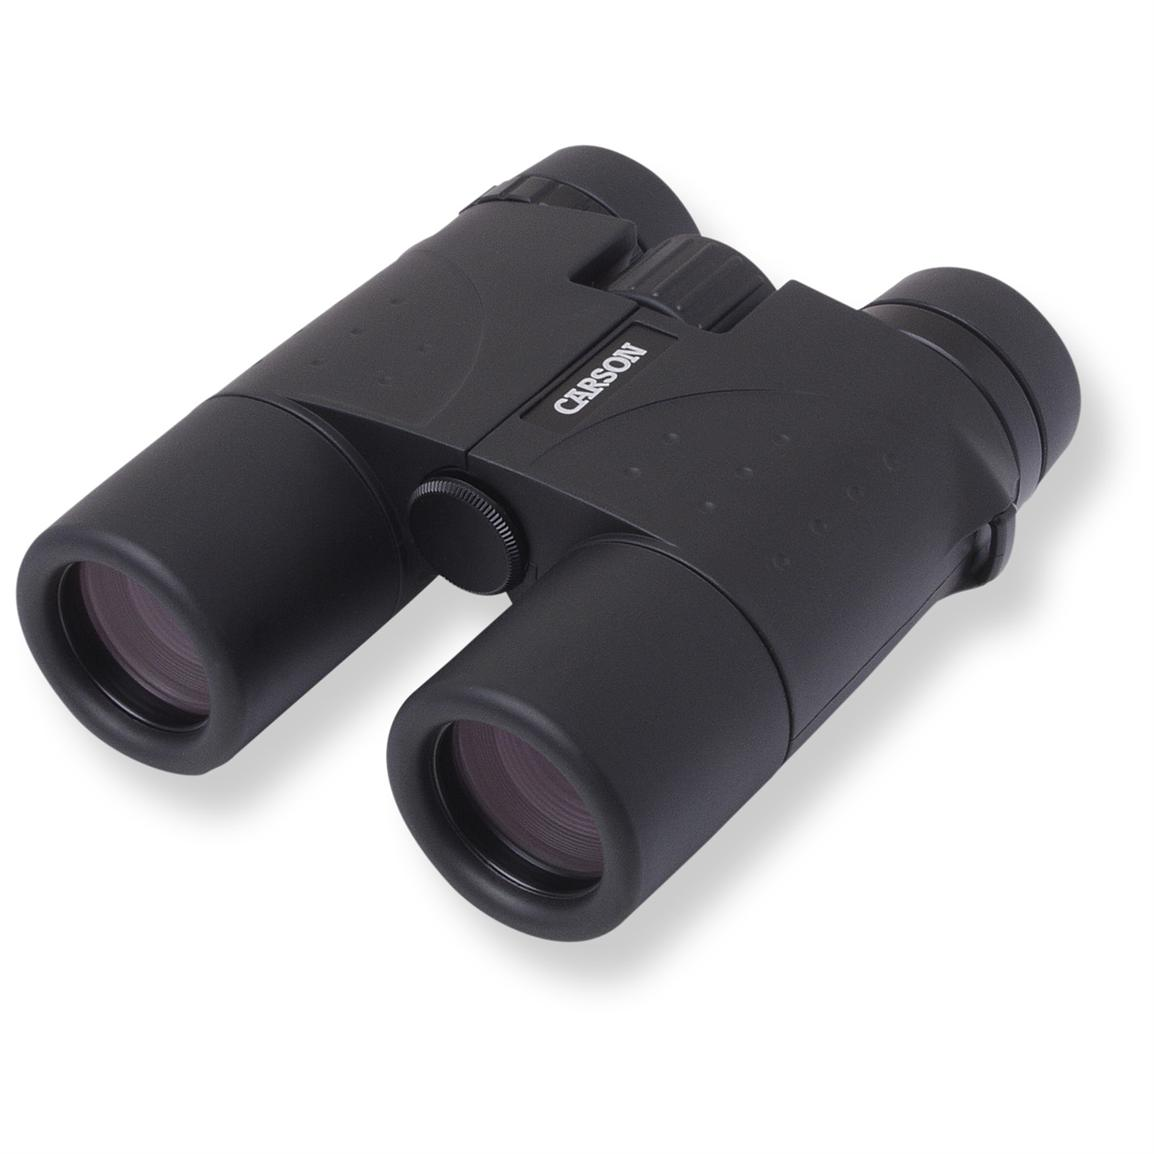 Carson® XM-Series™ 8x32 mm High Definition Binoculars